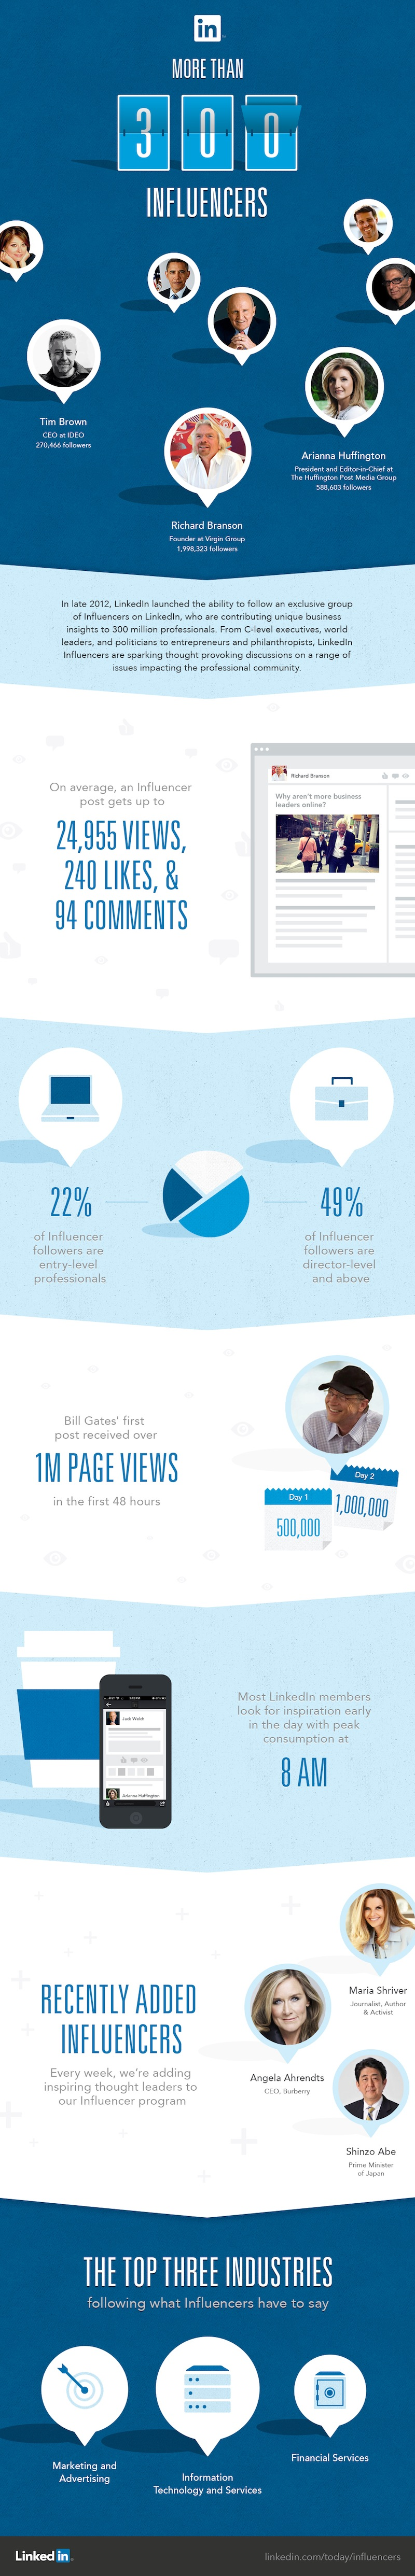 Complete Statistics about Influencers Group on LinkedIn